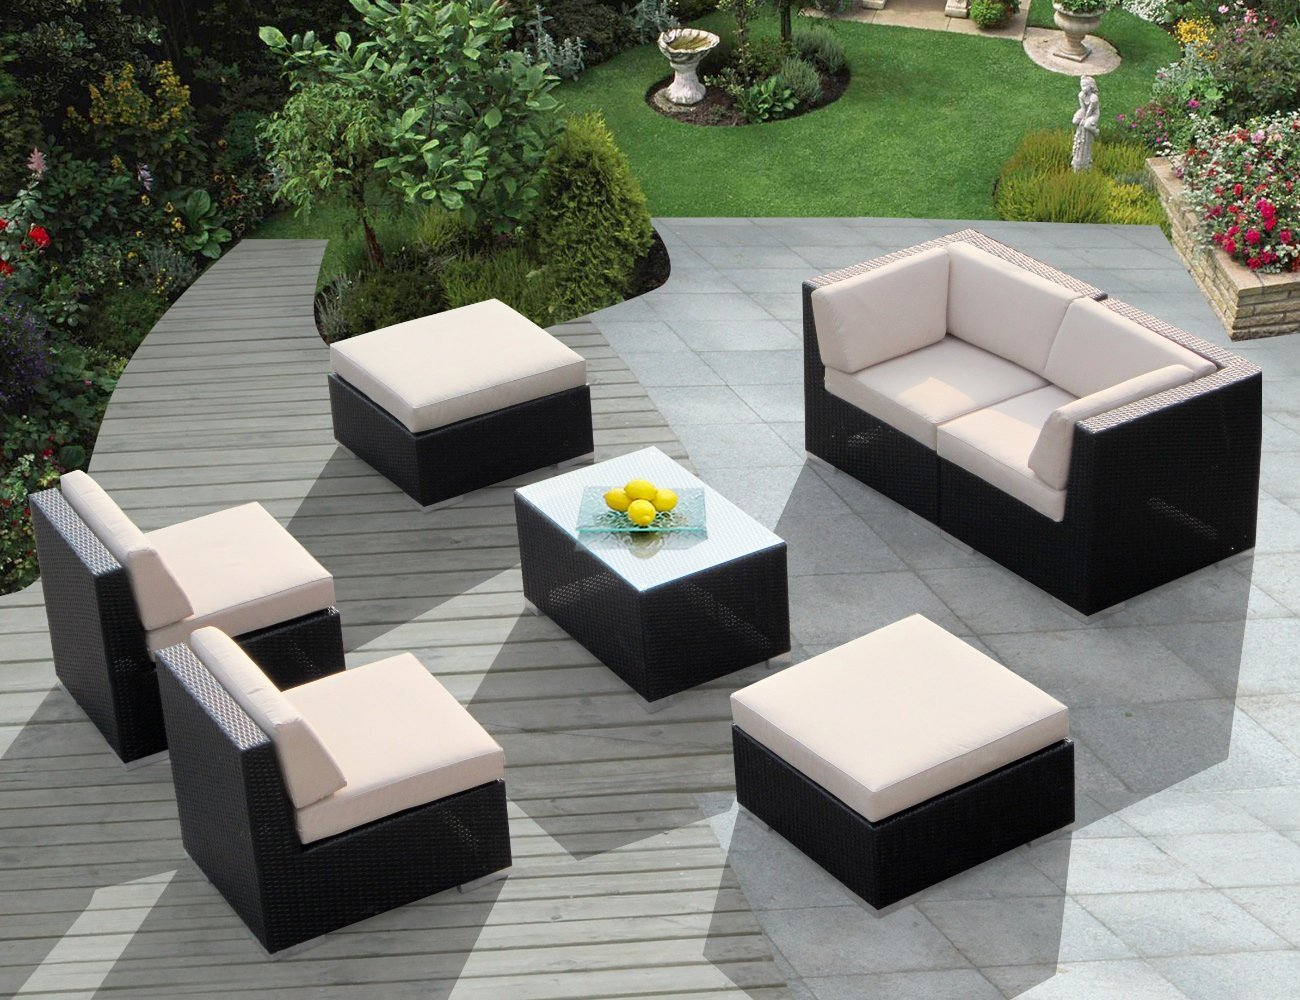 Genuine 7 Piece Ohana Patio Furniture Wicker Couch Set With Beige Cushion